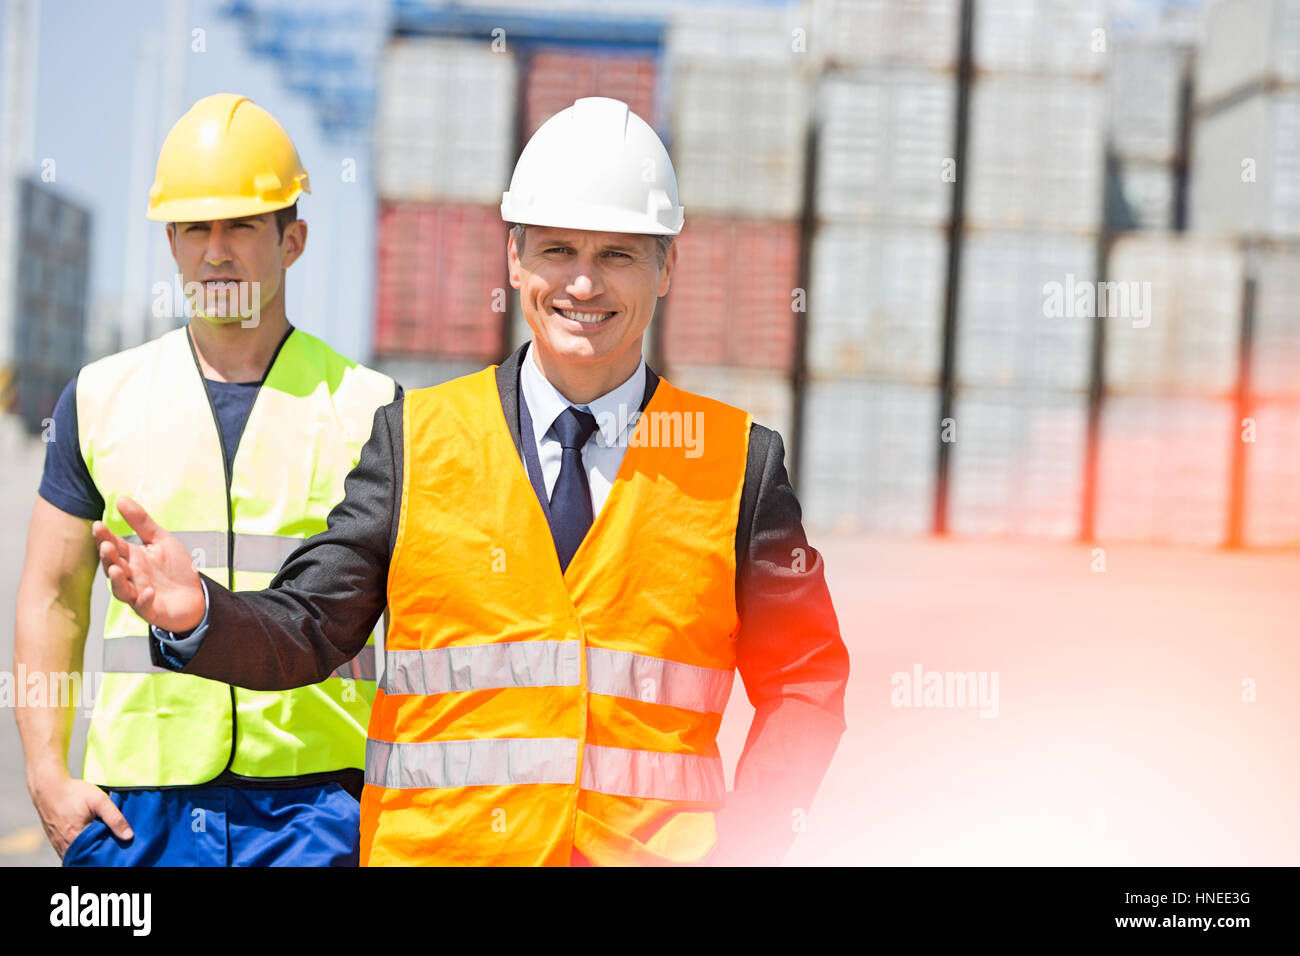 Male workers walking in shipping yard - Stock Image